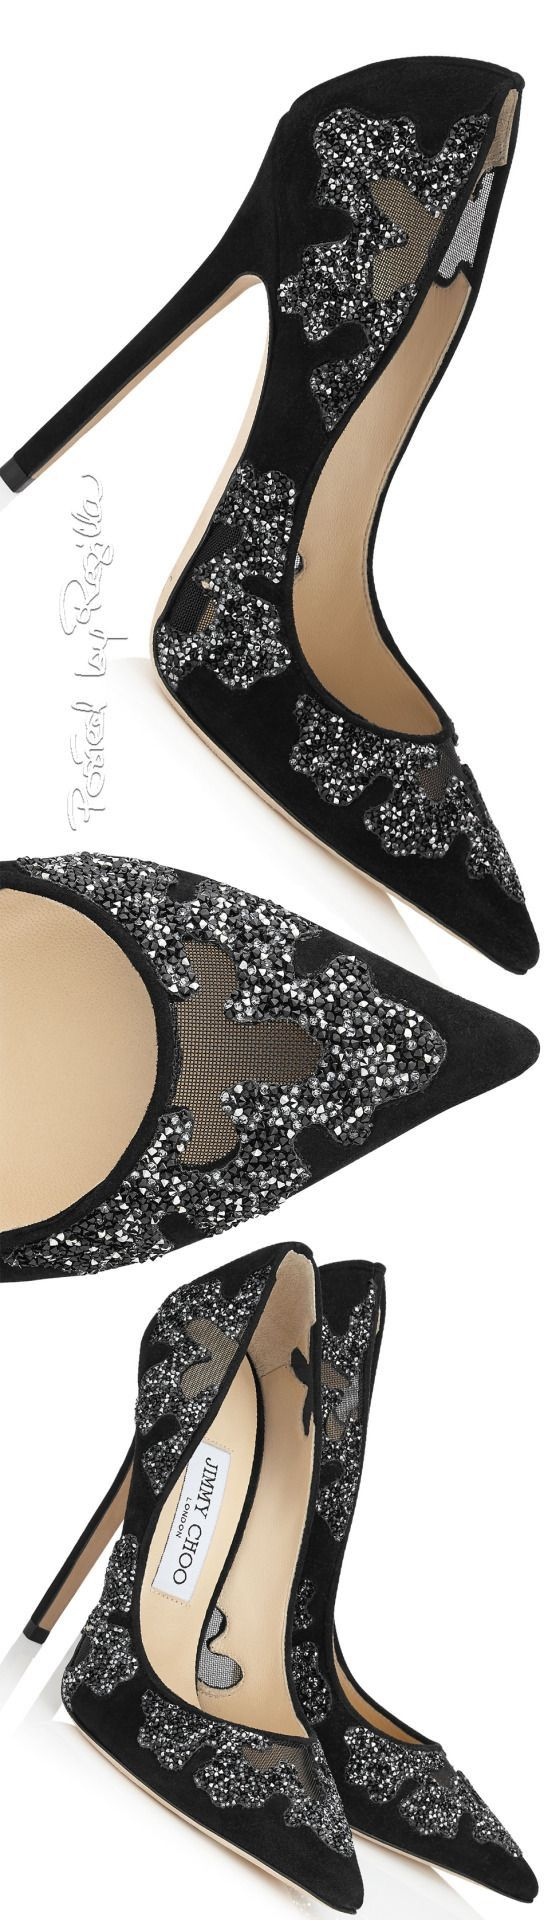 Rosamaria G Frangini | High Shoes | Shoe Addict |